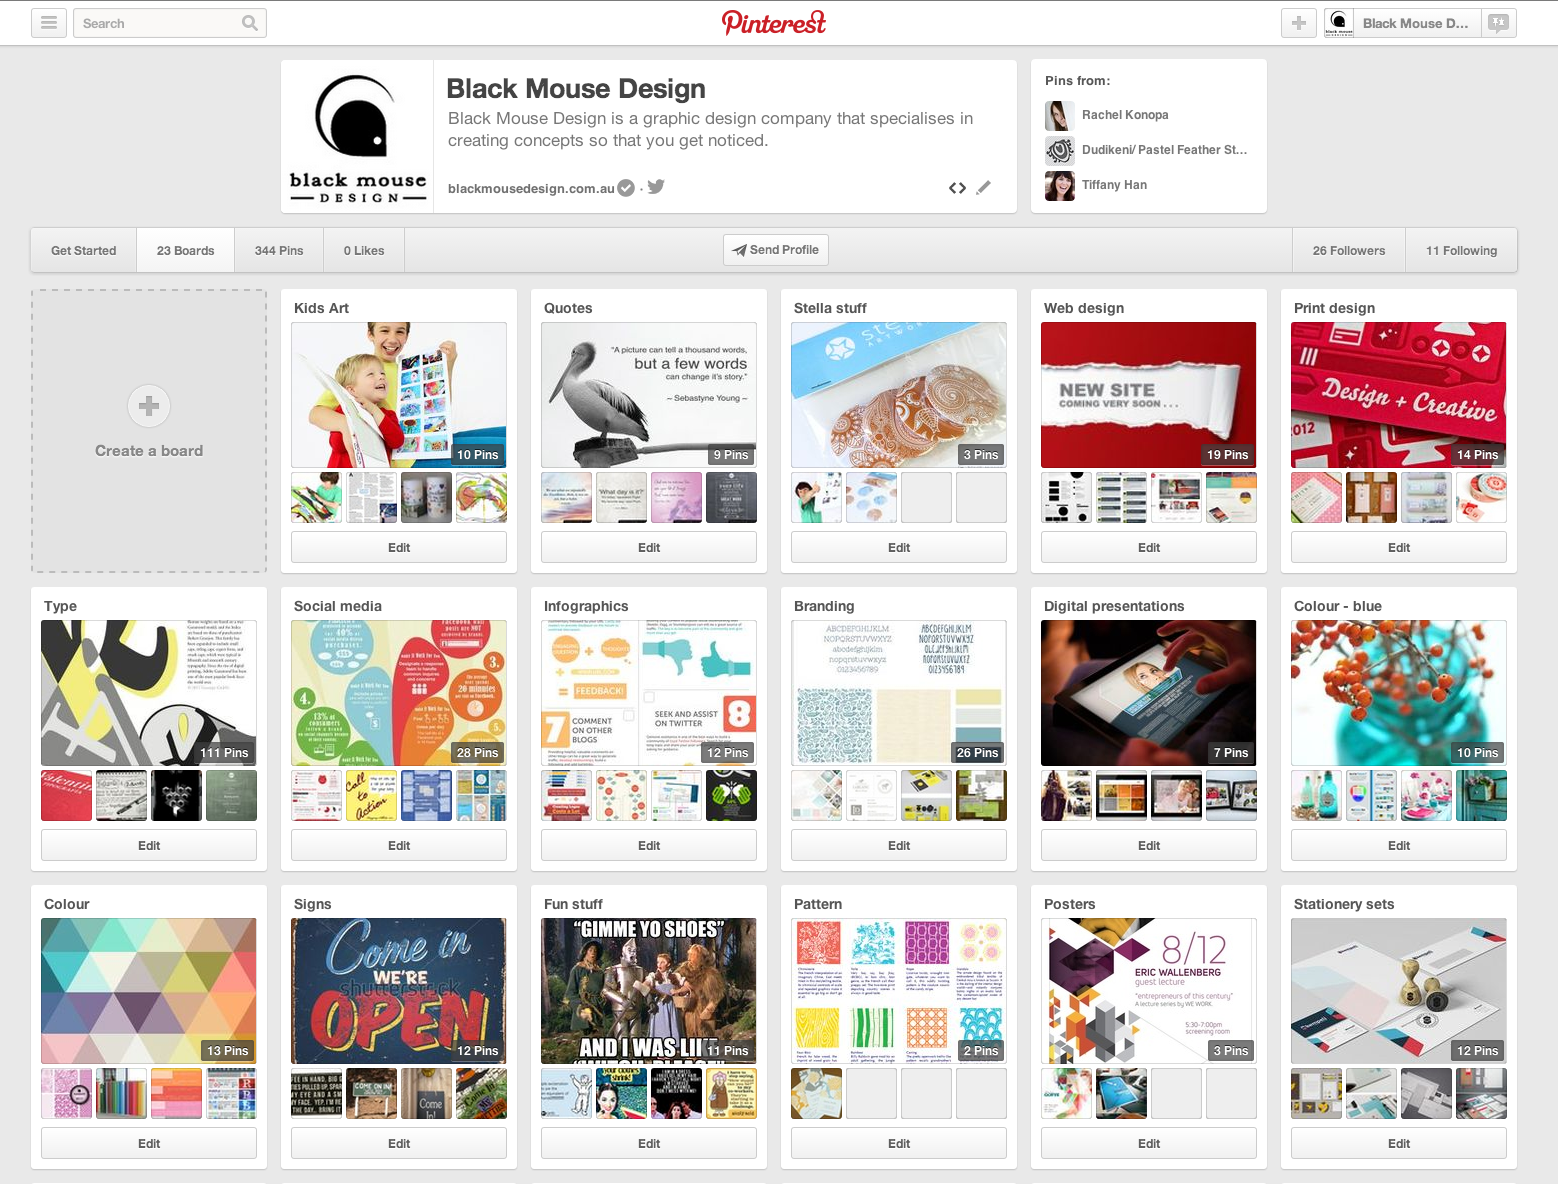 pinterest_collection-of-boards